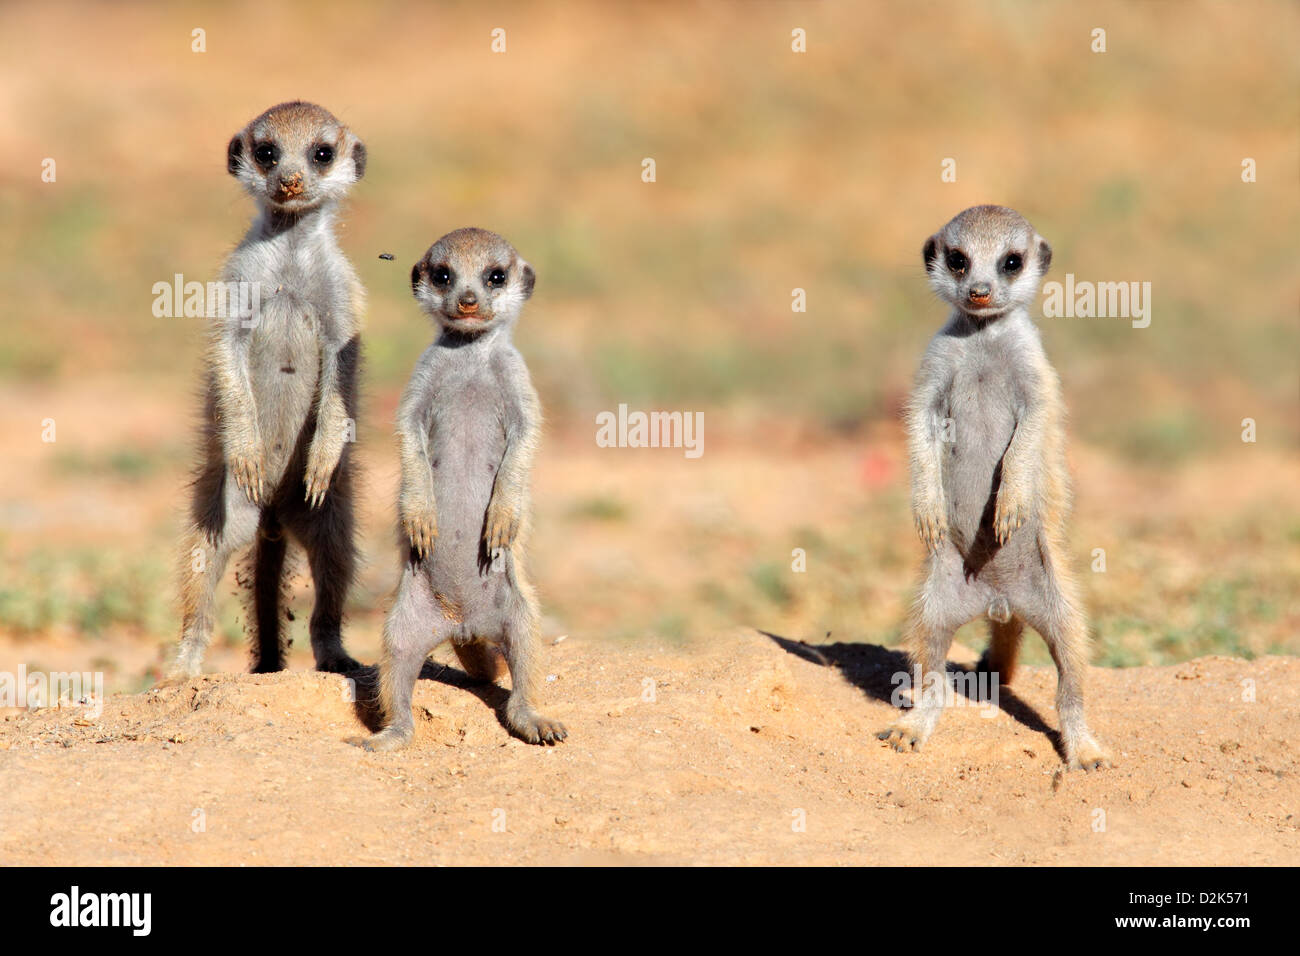 Cute meerkat babies (Suricata suricatta), Kalahari desert, South Africa Stock Photo